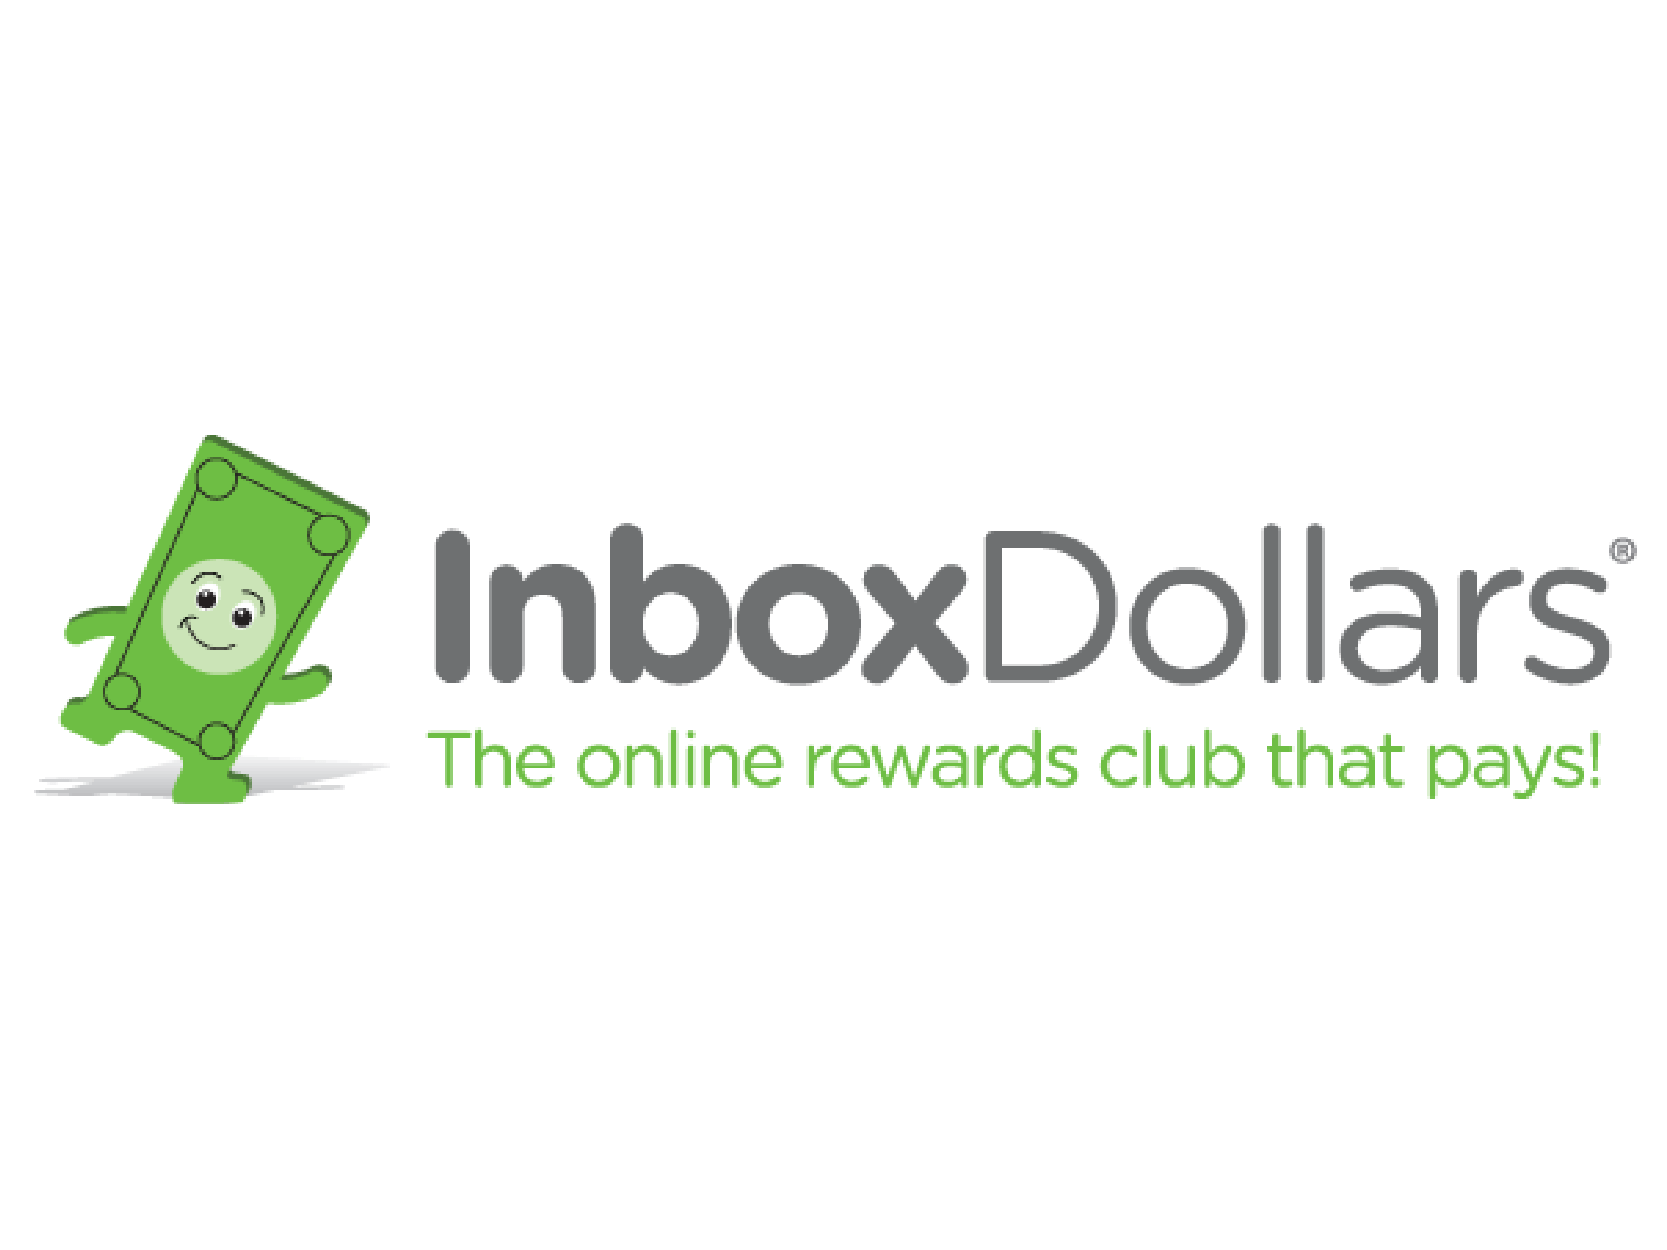 $15 + Free Inboxdollars Winit Code Cheat ( August ) - 2019